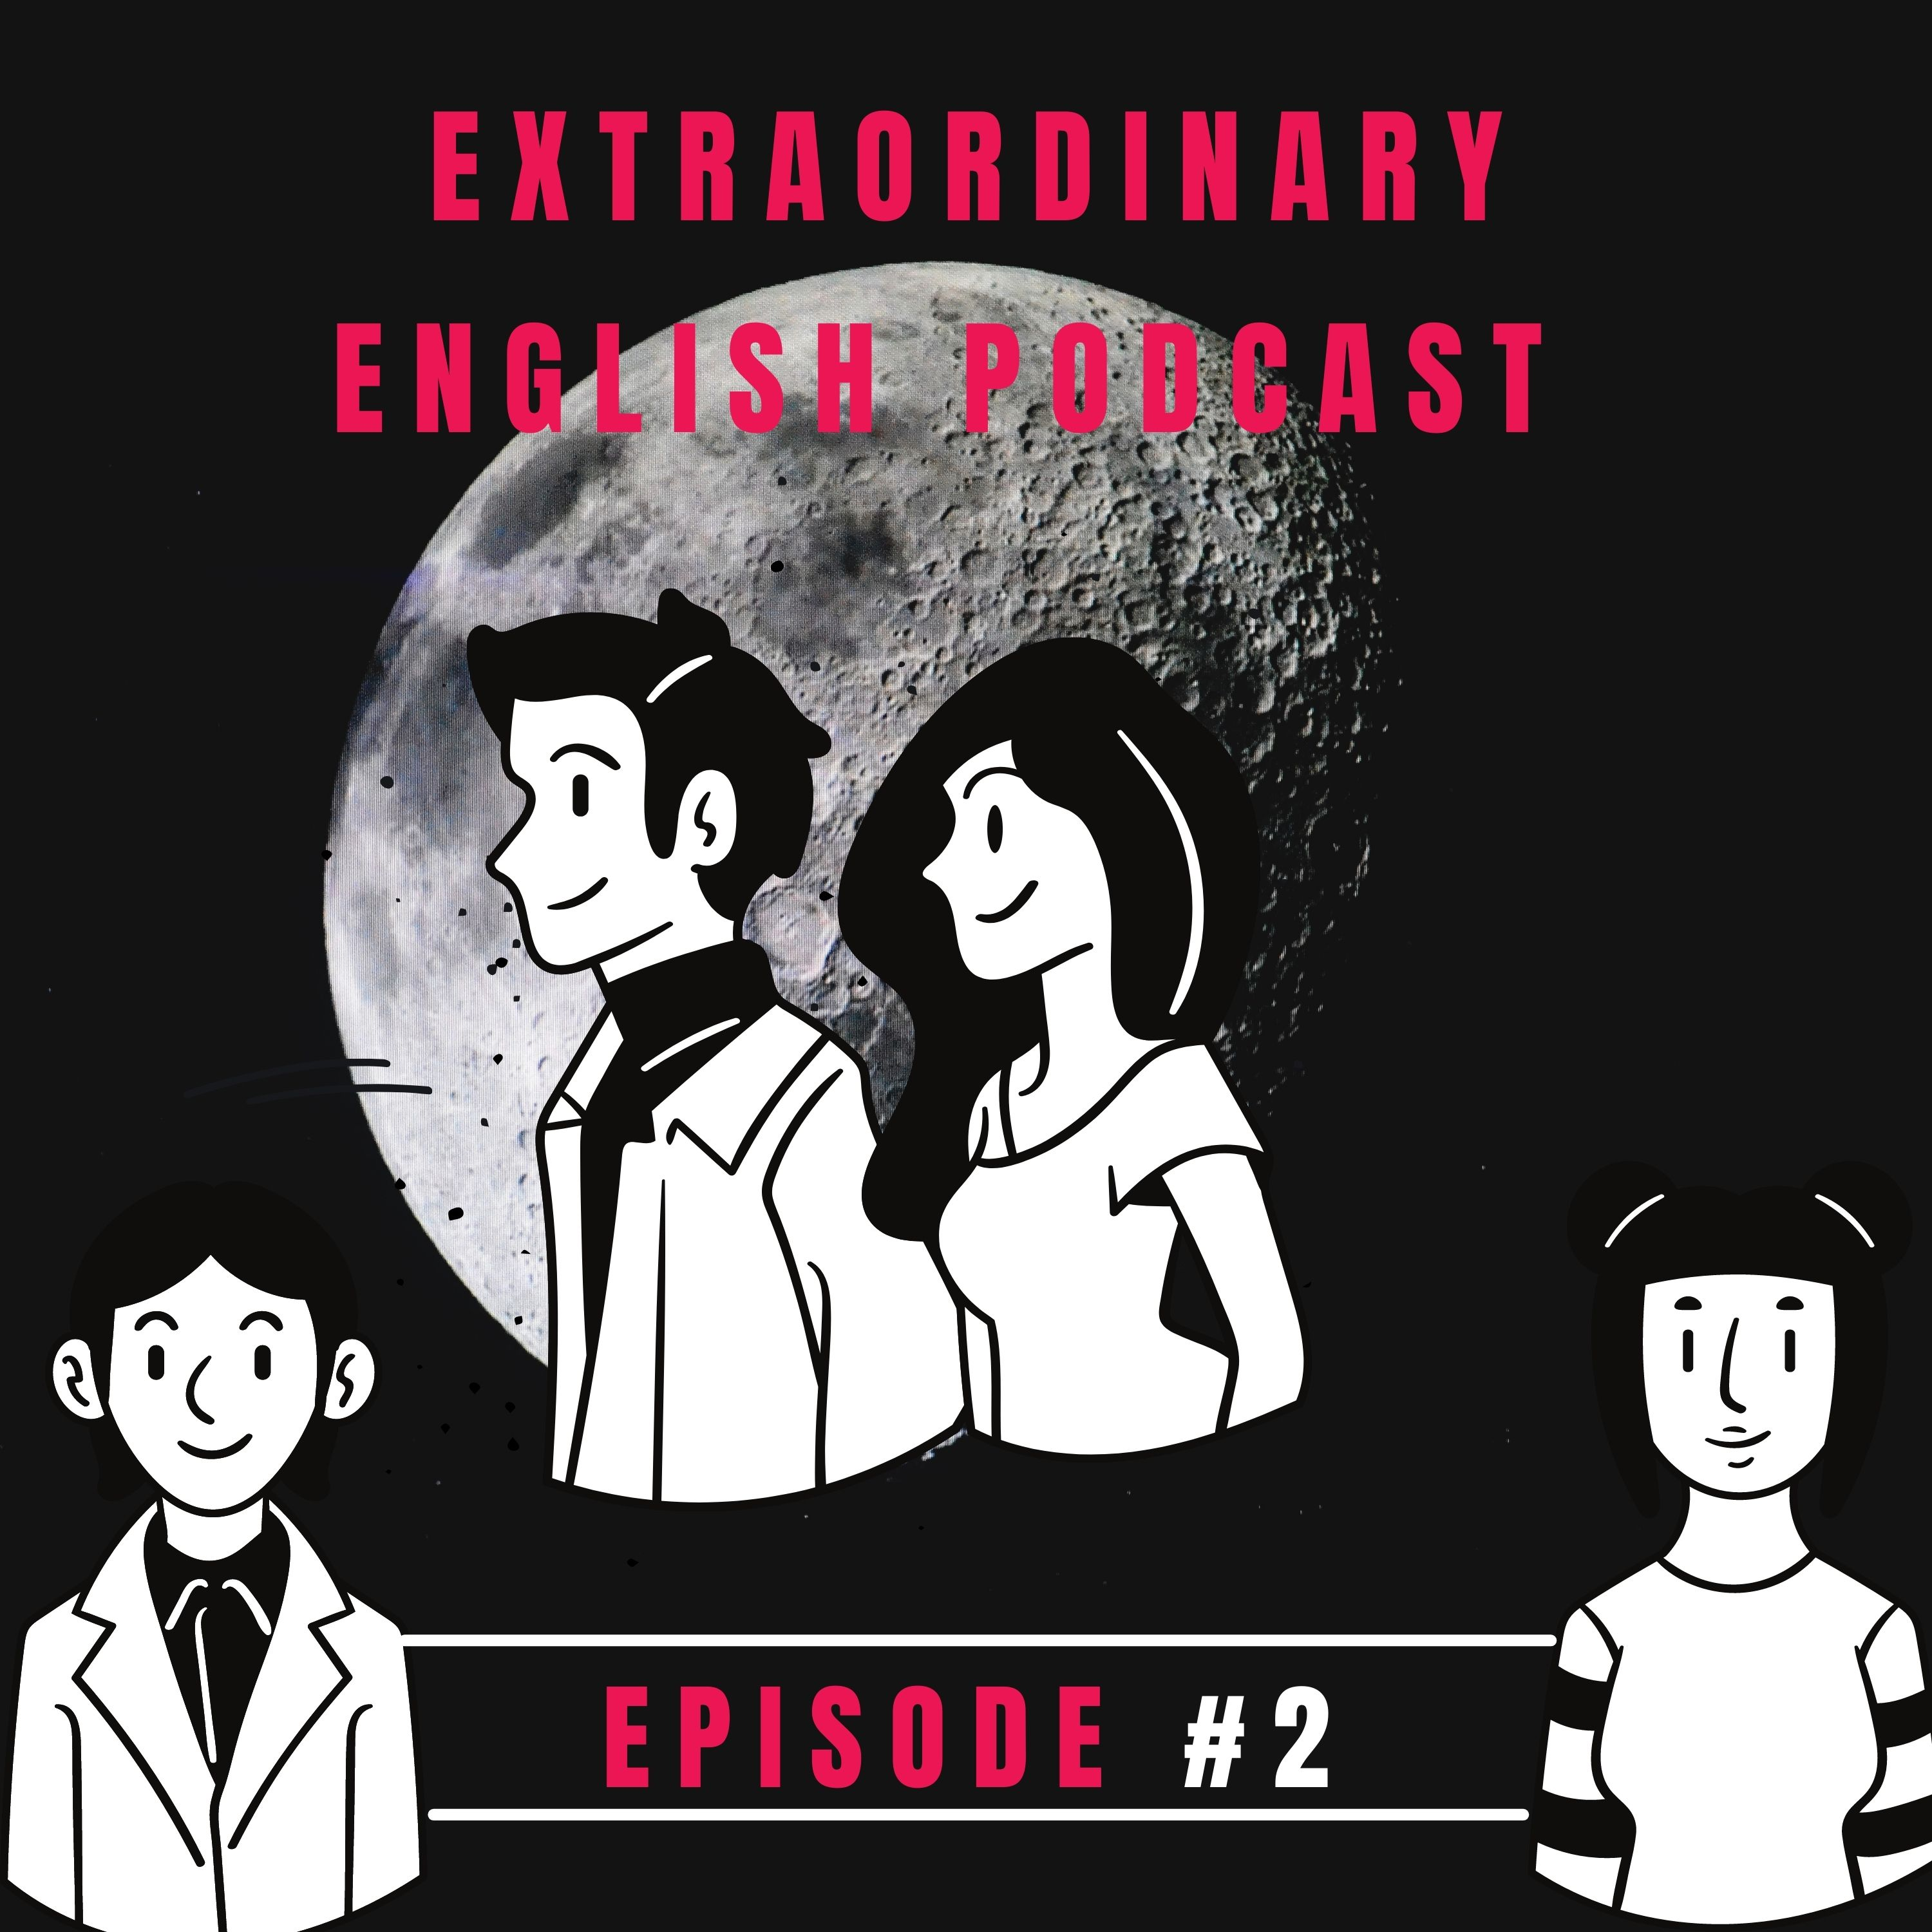 Extraordinary English Podcast, Episode 2